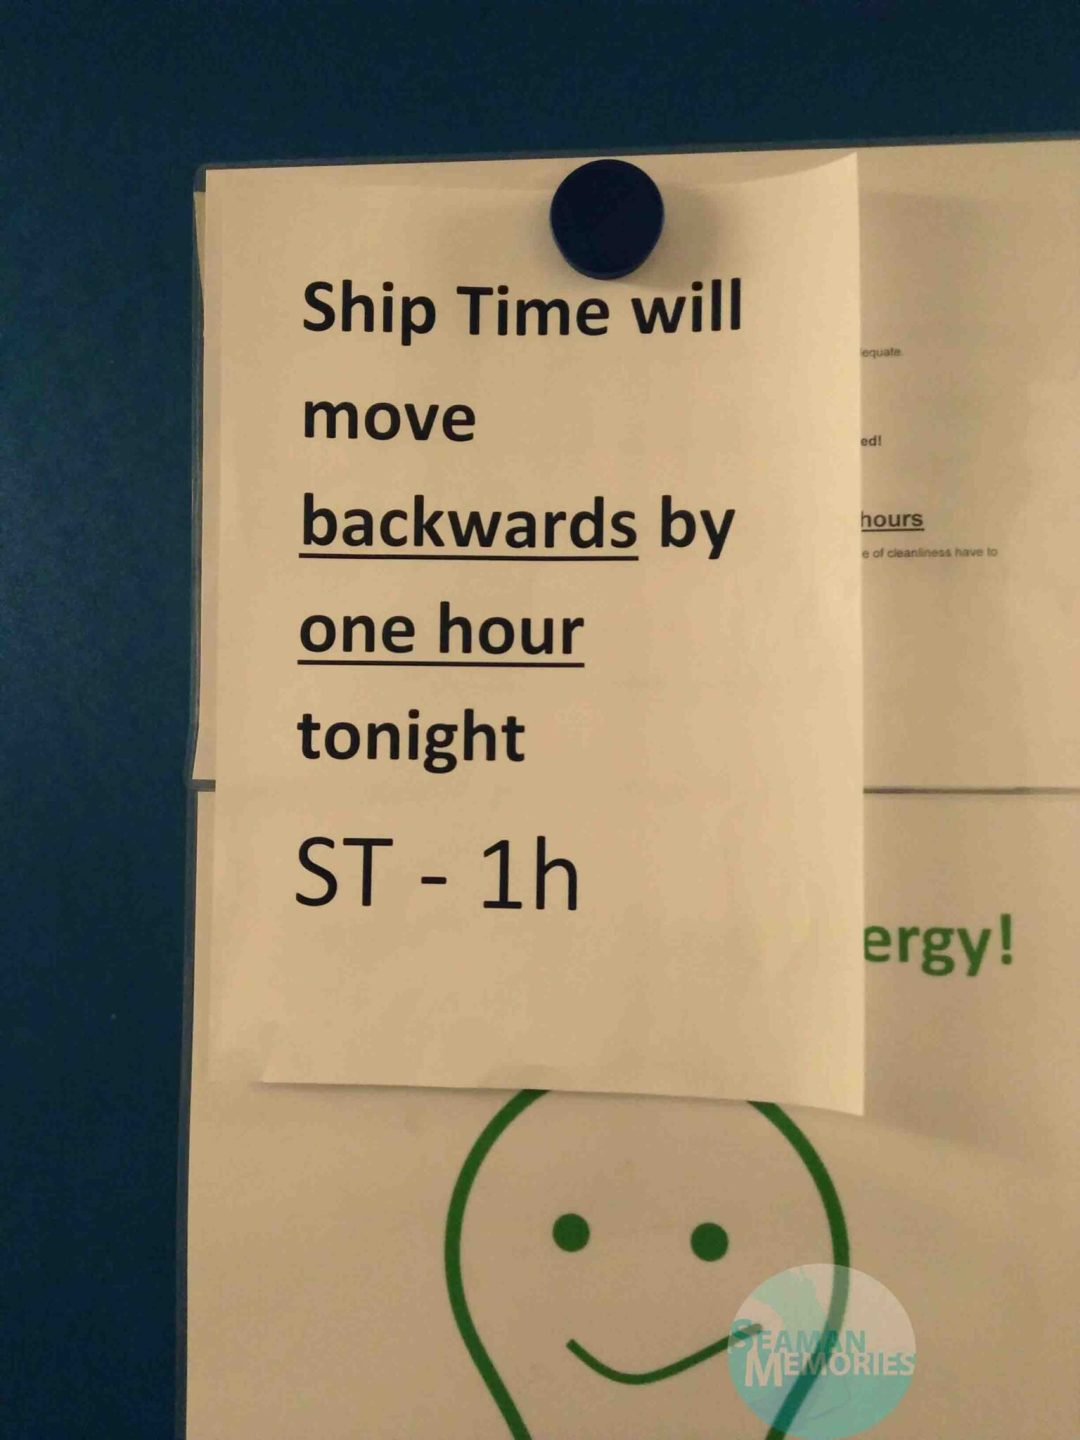 Ship time will move backwards by 1 hour tonight